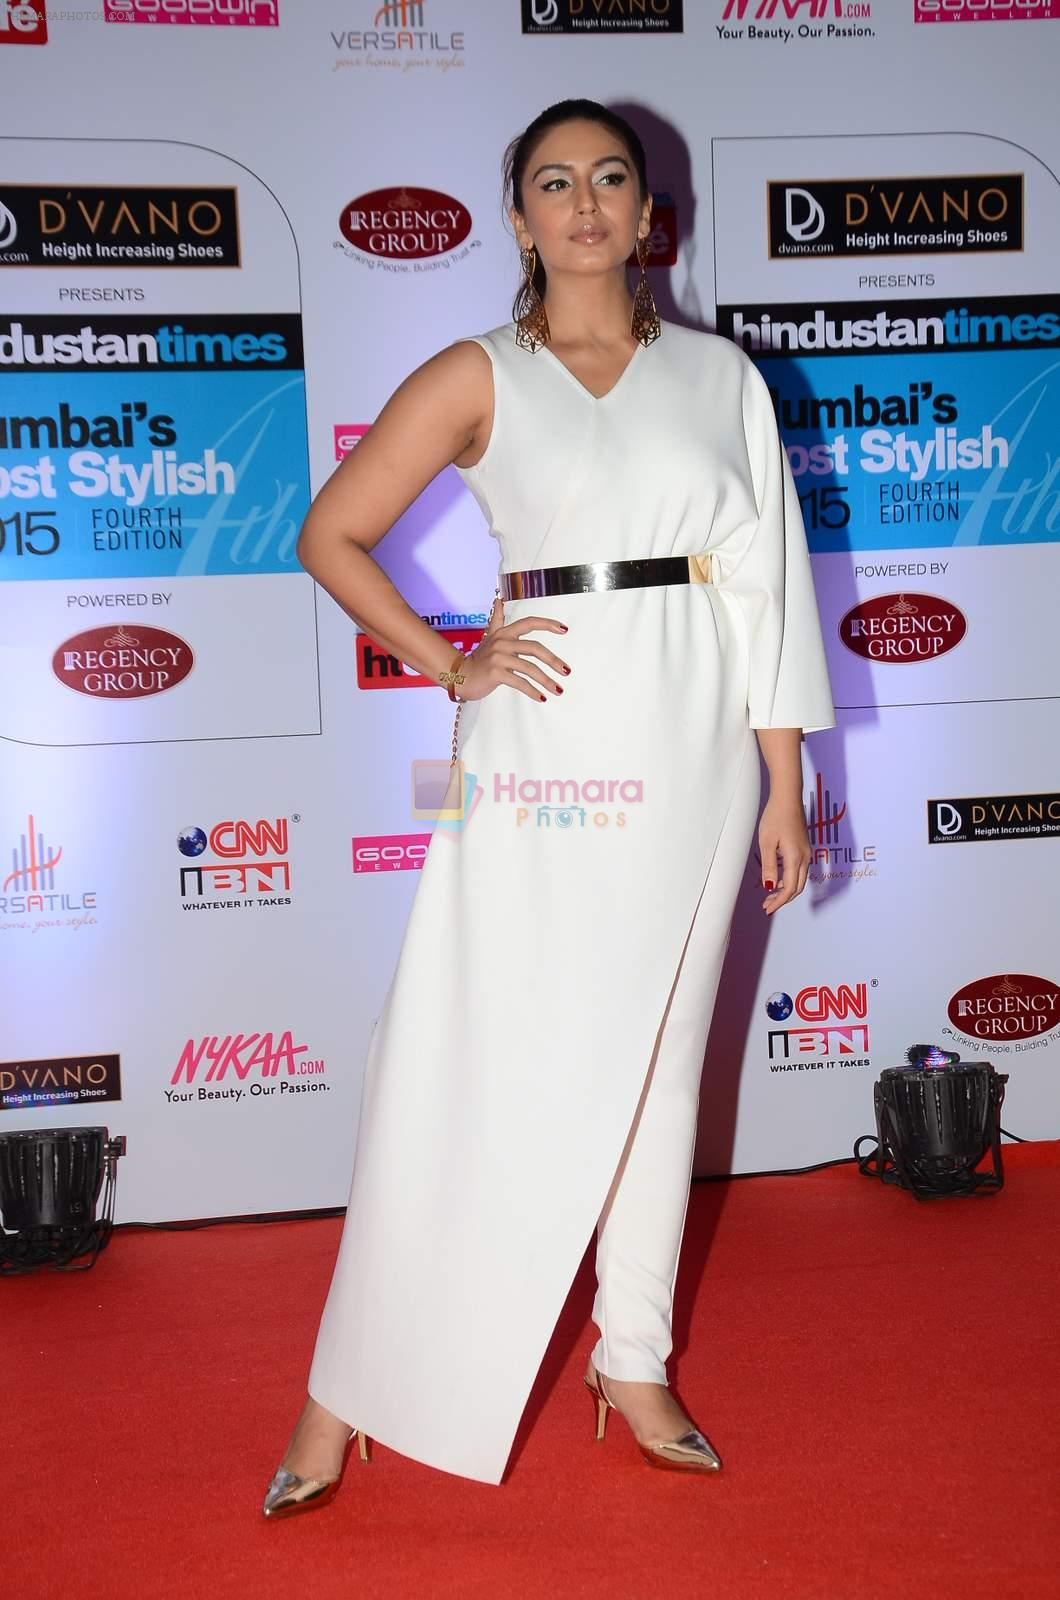 Huma Qureshi at HT Mumbai's Most Stylish Awards 2015 in Mumbai on 26th March 2015